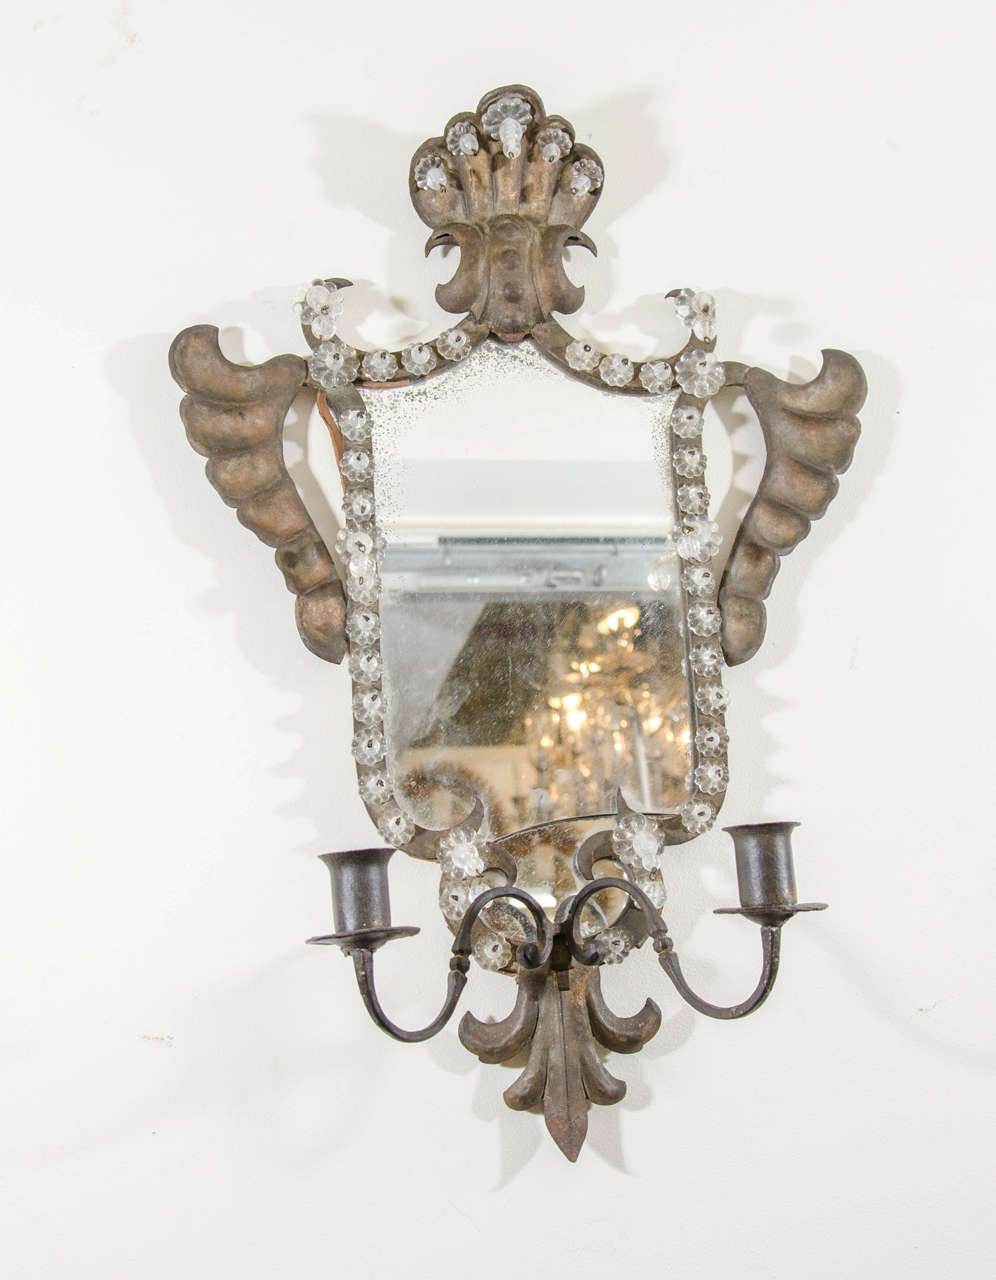 Antique Mirror Wall Sconces : Antique Pair of Venetian Mirrored Wall Sconces in Hand-Wrought Iron For Sale at 1stdibs